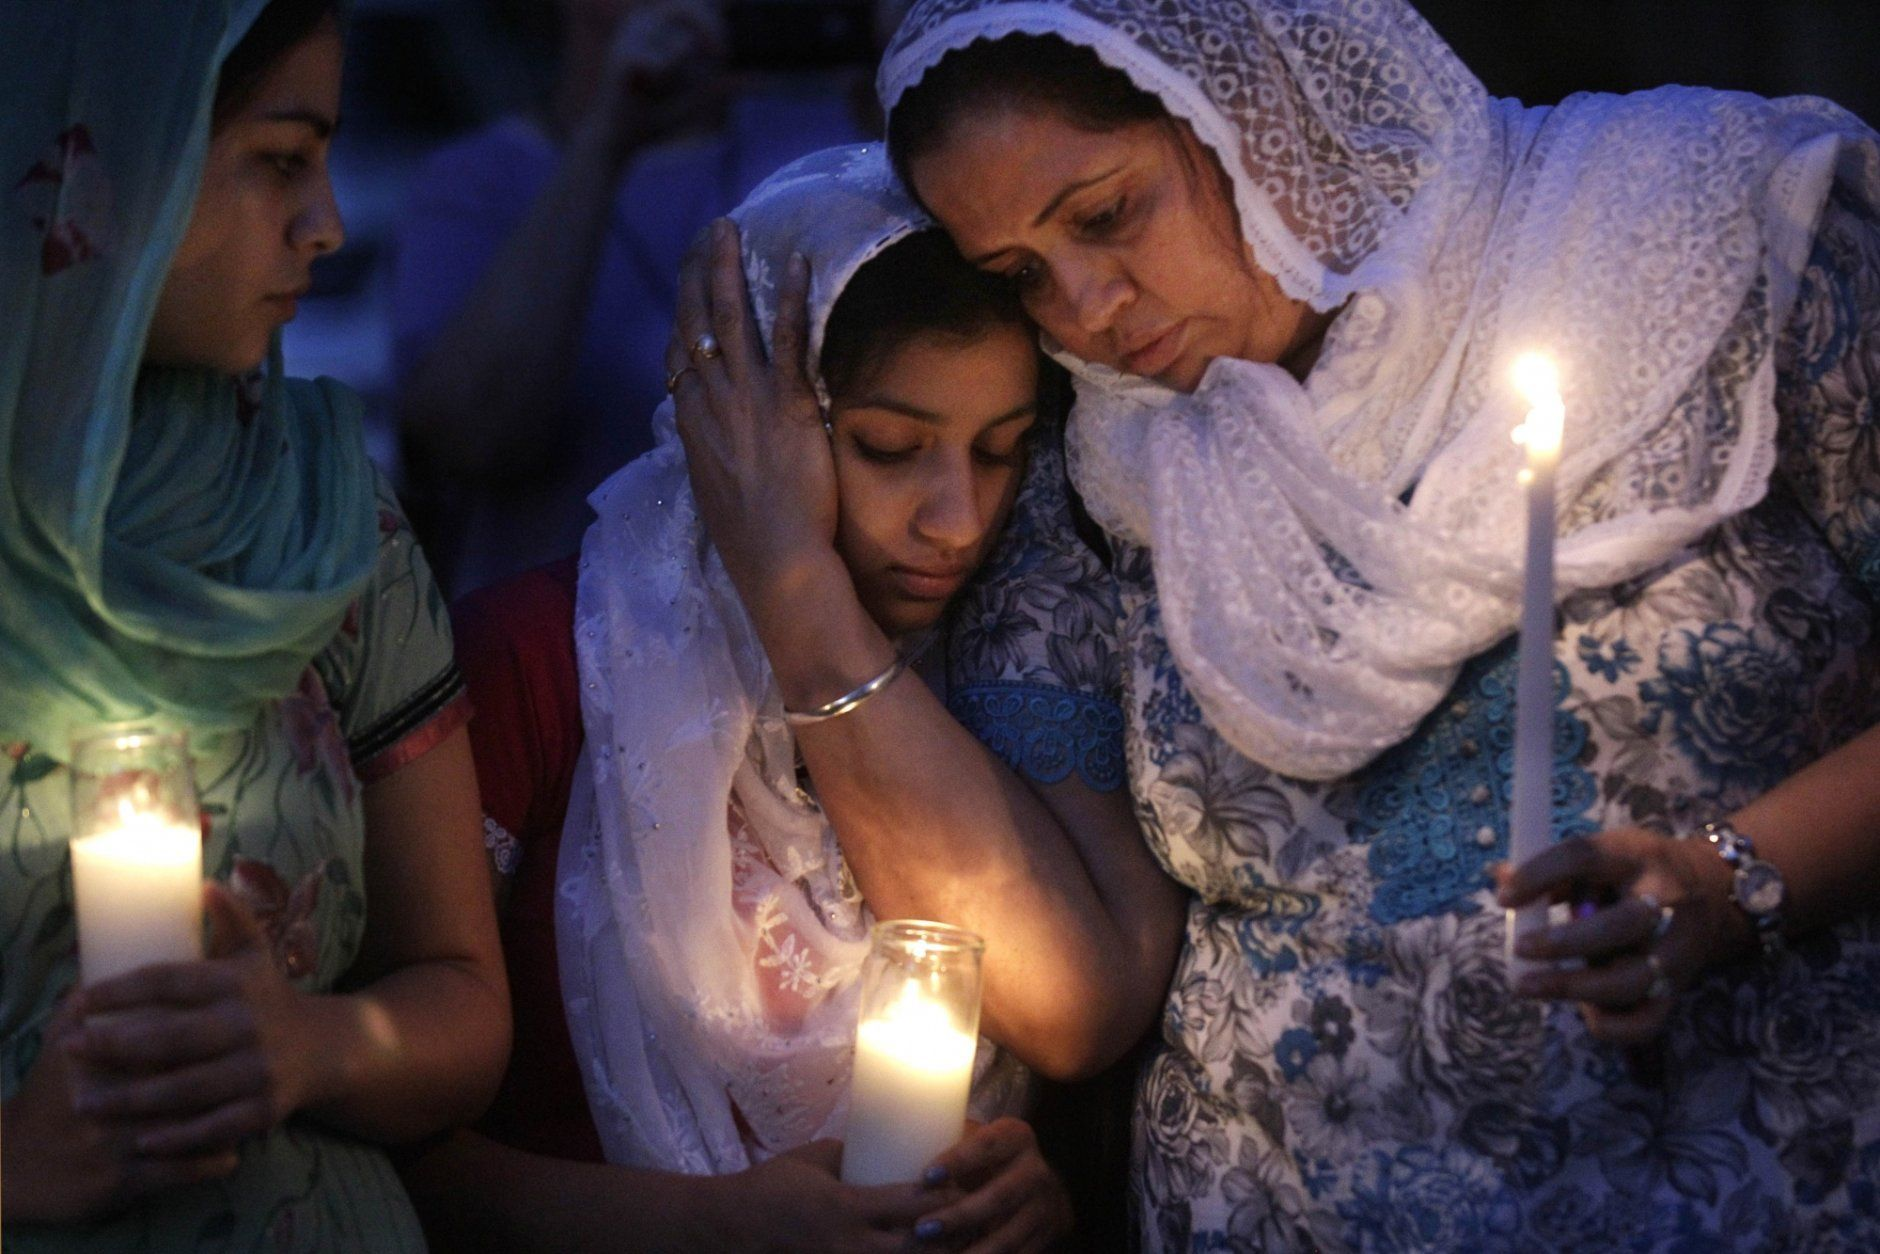 FILE - In this Monday, Aug. 6, 2012 file photo, Sikh worshipers gather for a candlelight vigil after prayer services at the Sikh Religious Society of Wisconsin in Brookfield, Wis. A gunman identified as a former leader of a white supremacist heavy metal band killed six people at the Sikh Temple of Wisconsin in Oak Creek before being shot to death by police. (AP Photo/M. Spencer Green)